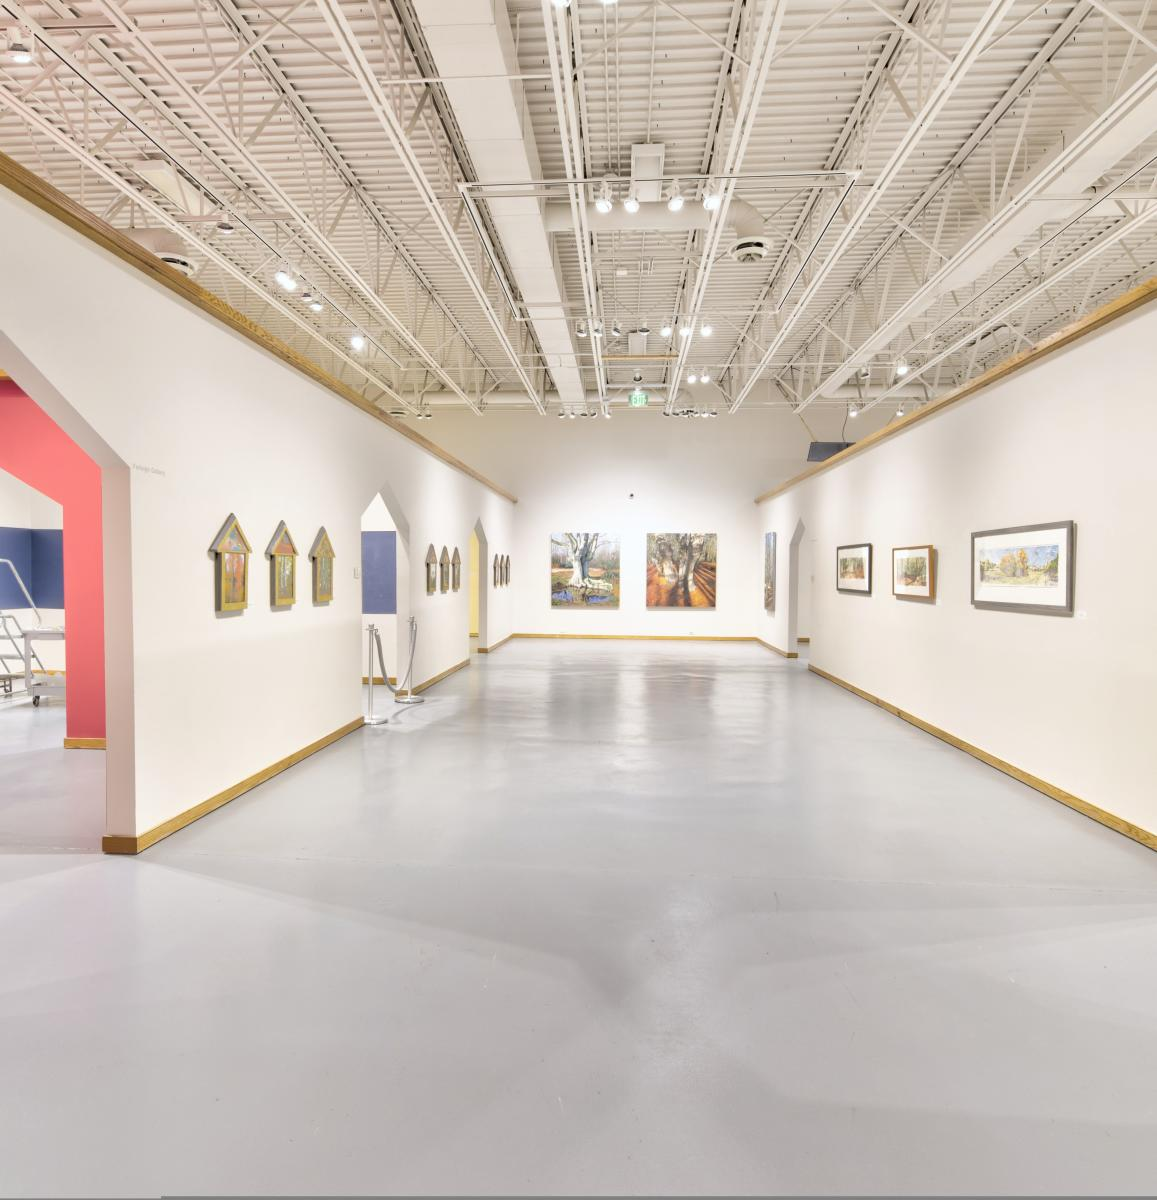 Casper has 11 museums, and no lack of history to explore. Visit the National Historic Trails Interpretive Center or the Nicolaysen Art Museum which includes pieces from Picasso, Charles Russell, and more.